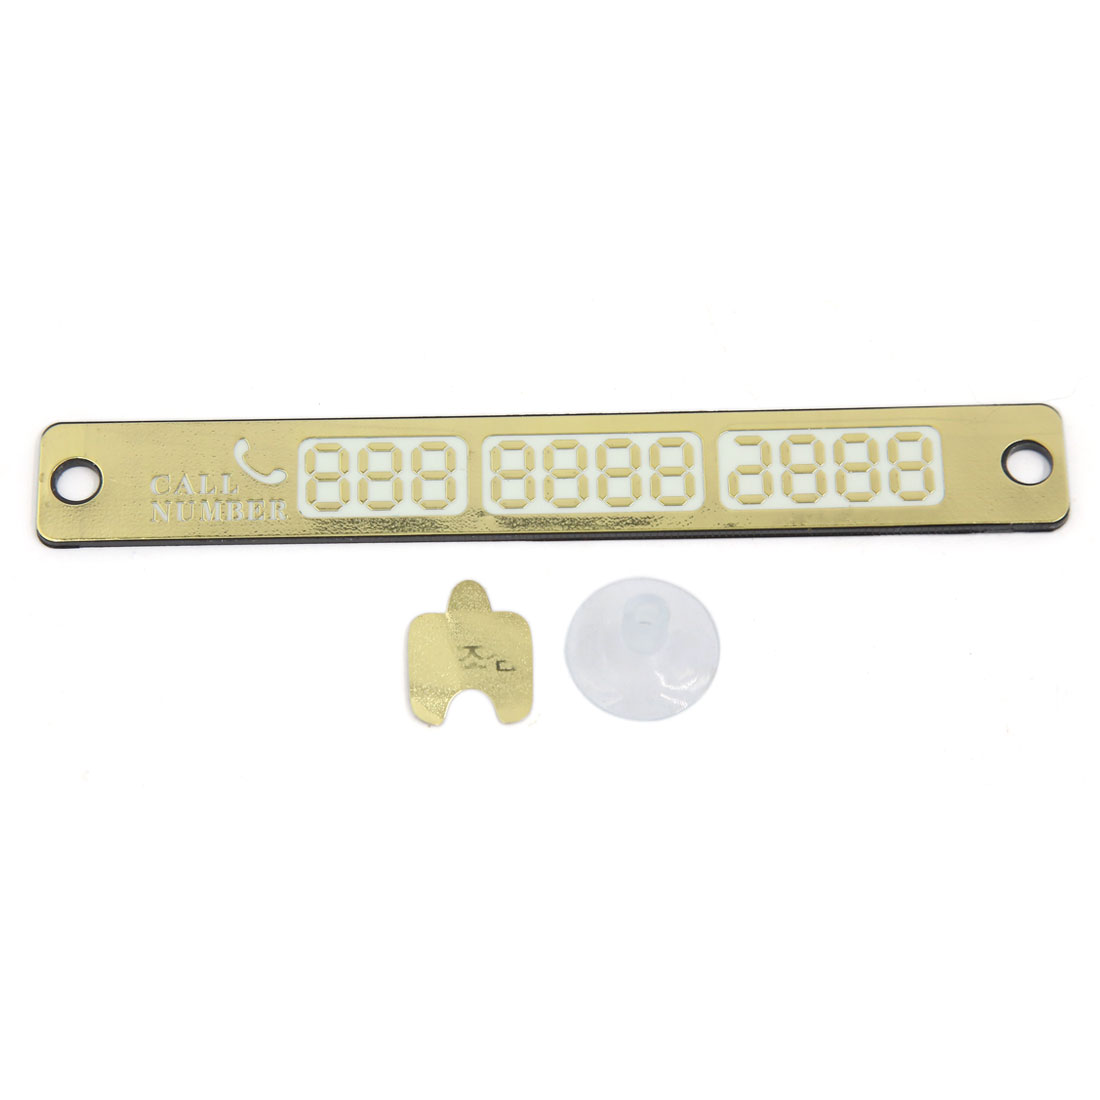 Car Temporary Parking Card Night Light Phone Number Plate Crafts Sucker Vehicle